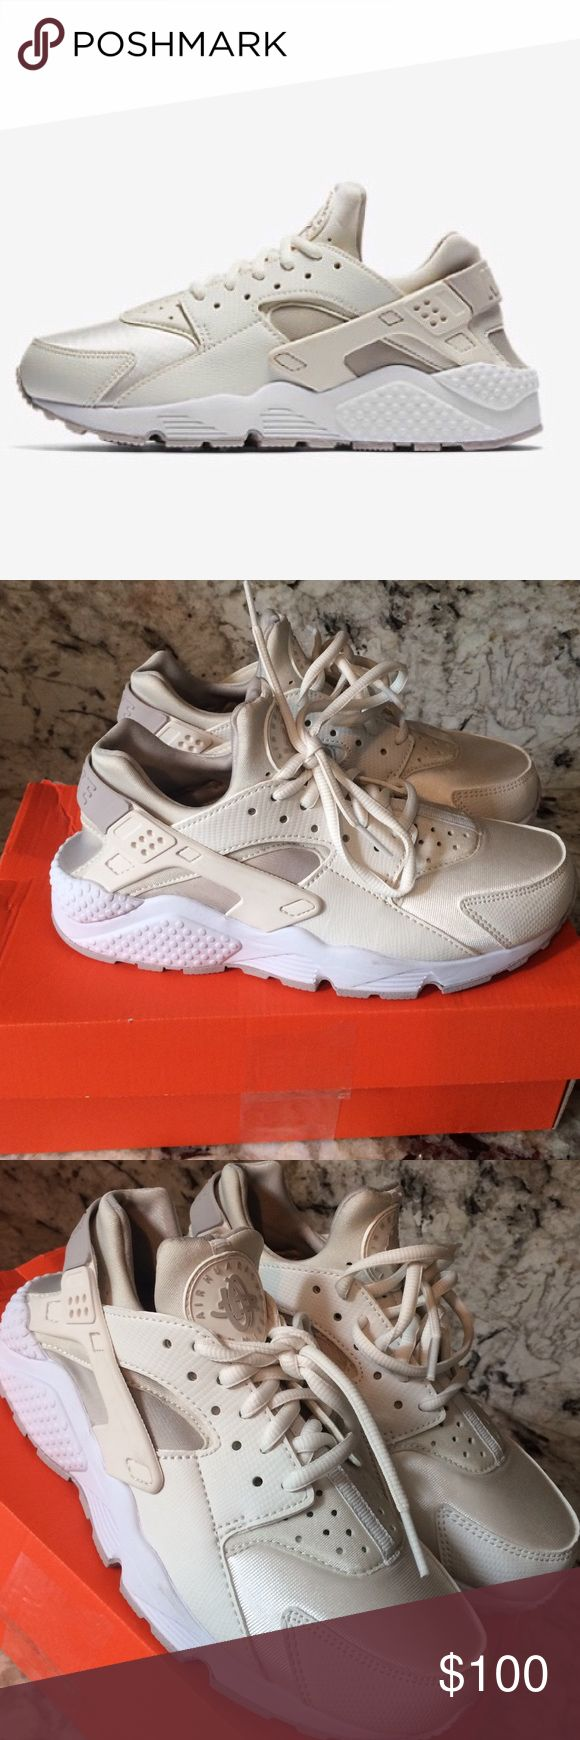 Nike huaraches Brand new in box, never worn. Cream color, very cute. Sadly toosmall for me. great addition to any closet‼️ TRUE TO SIZE Nike Shoes